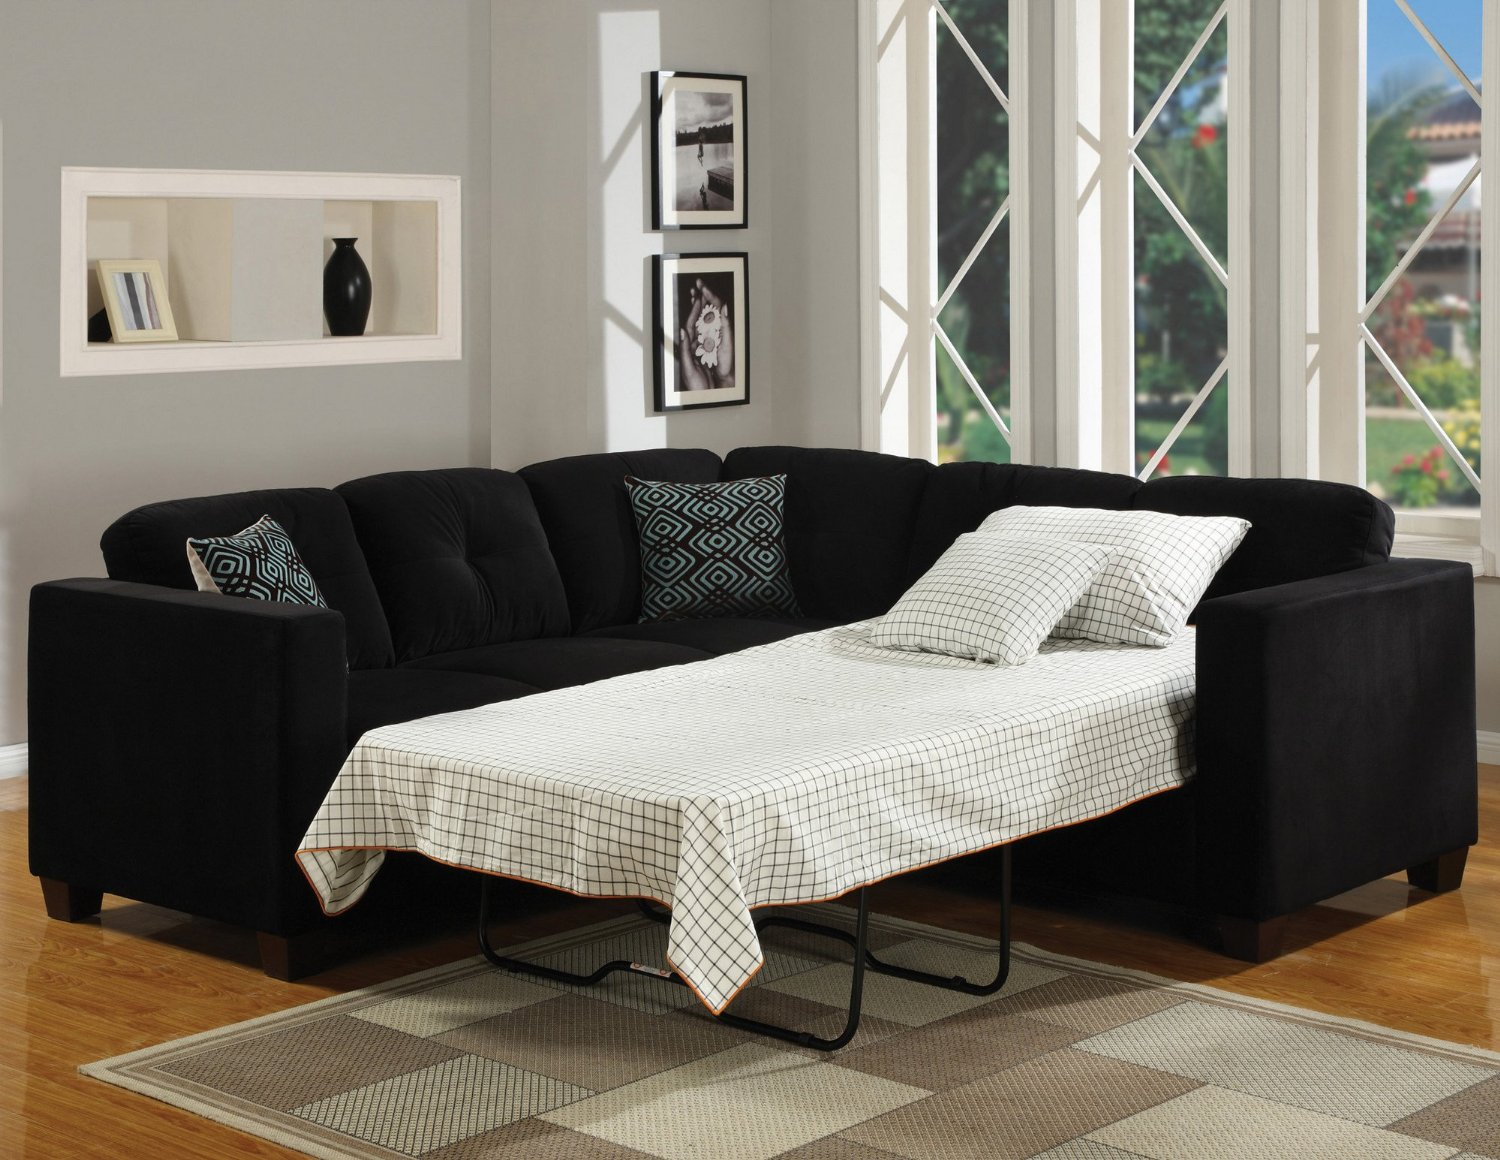 sleeper sectional sofa for small spaces small space sofa ideas sectional with chaise curved sofas for YBFOHQR